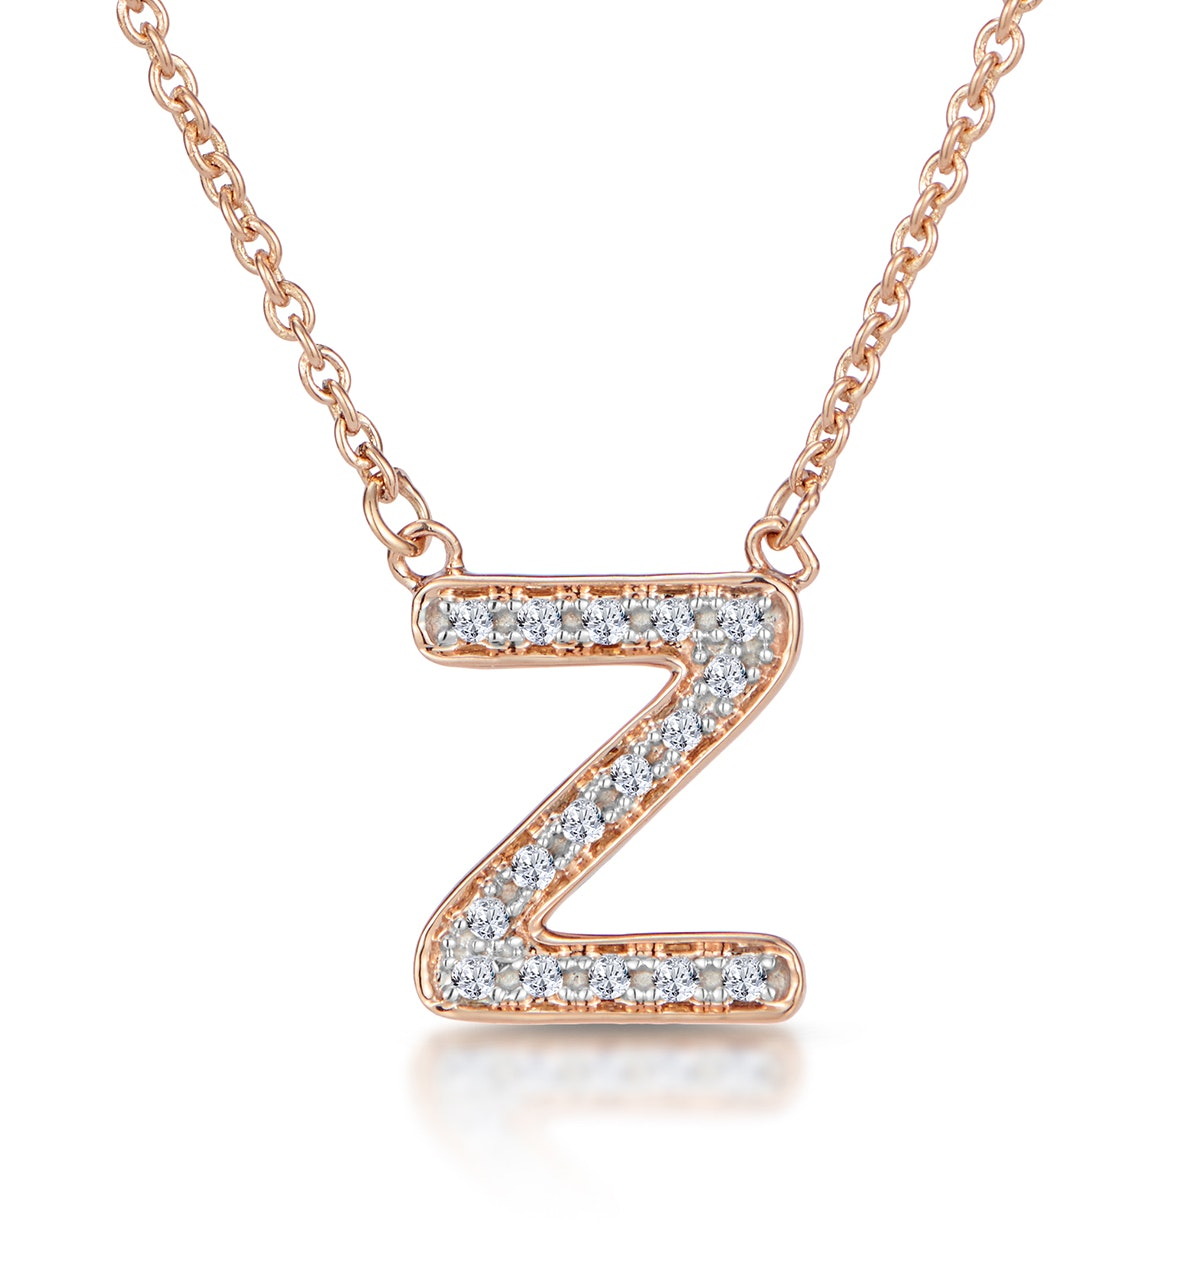 Initial 'Z' Necklace Diamond Encrusted Pave Set in 9K Rose Gold